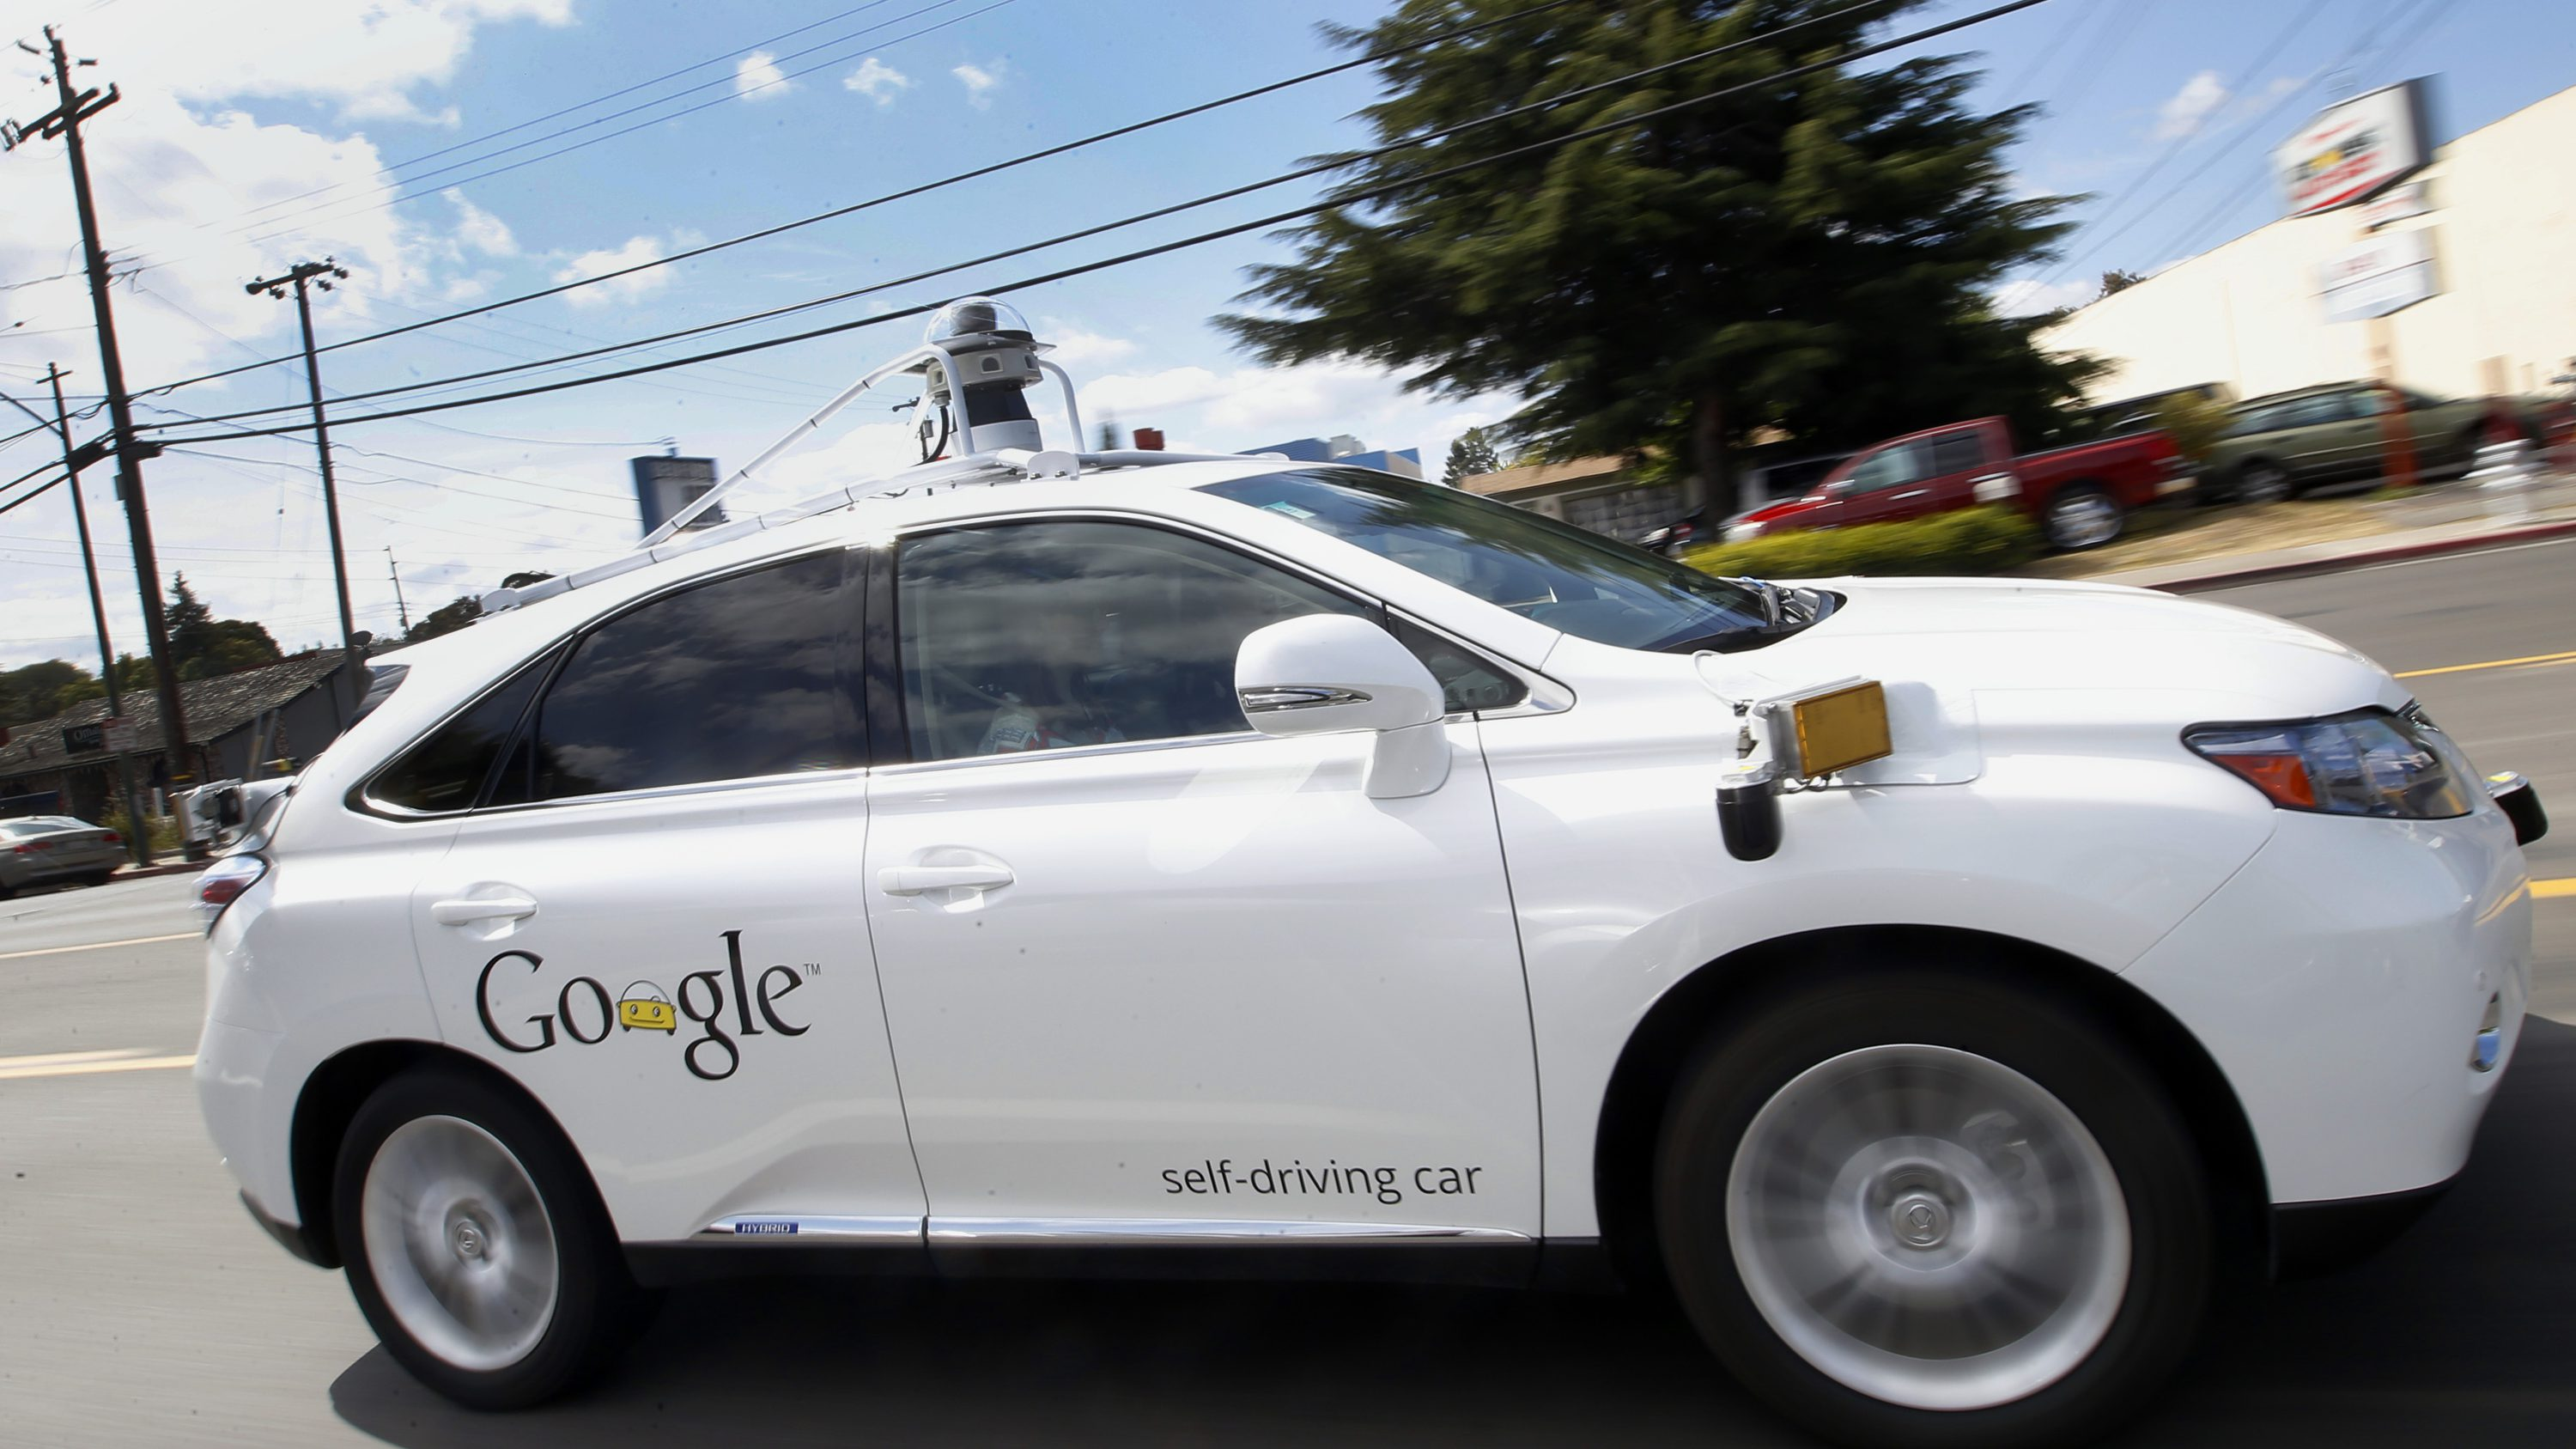 Google's self-driving Lexus drives along a street in Mountain View, California.